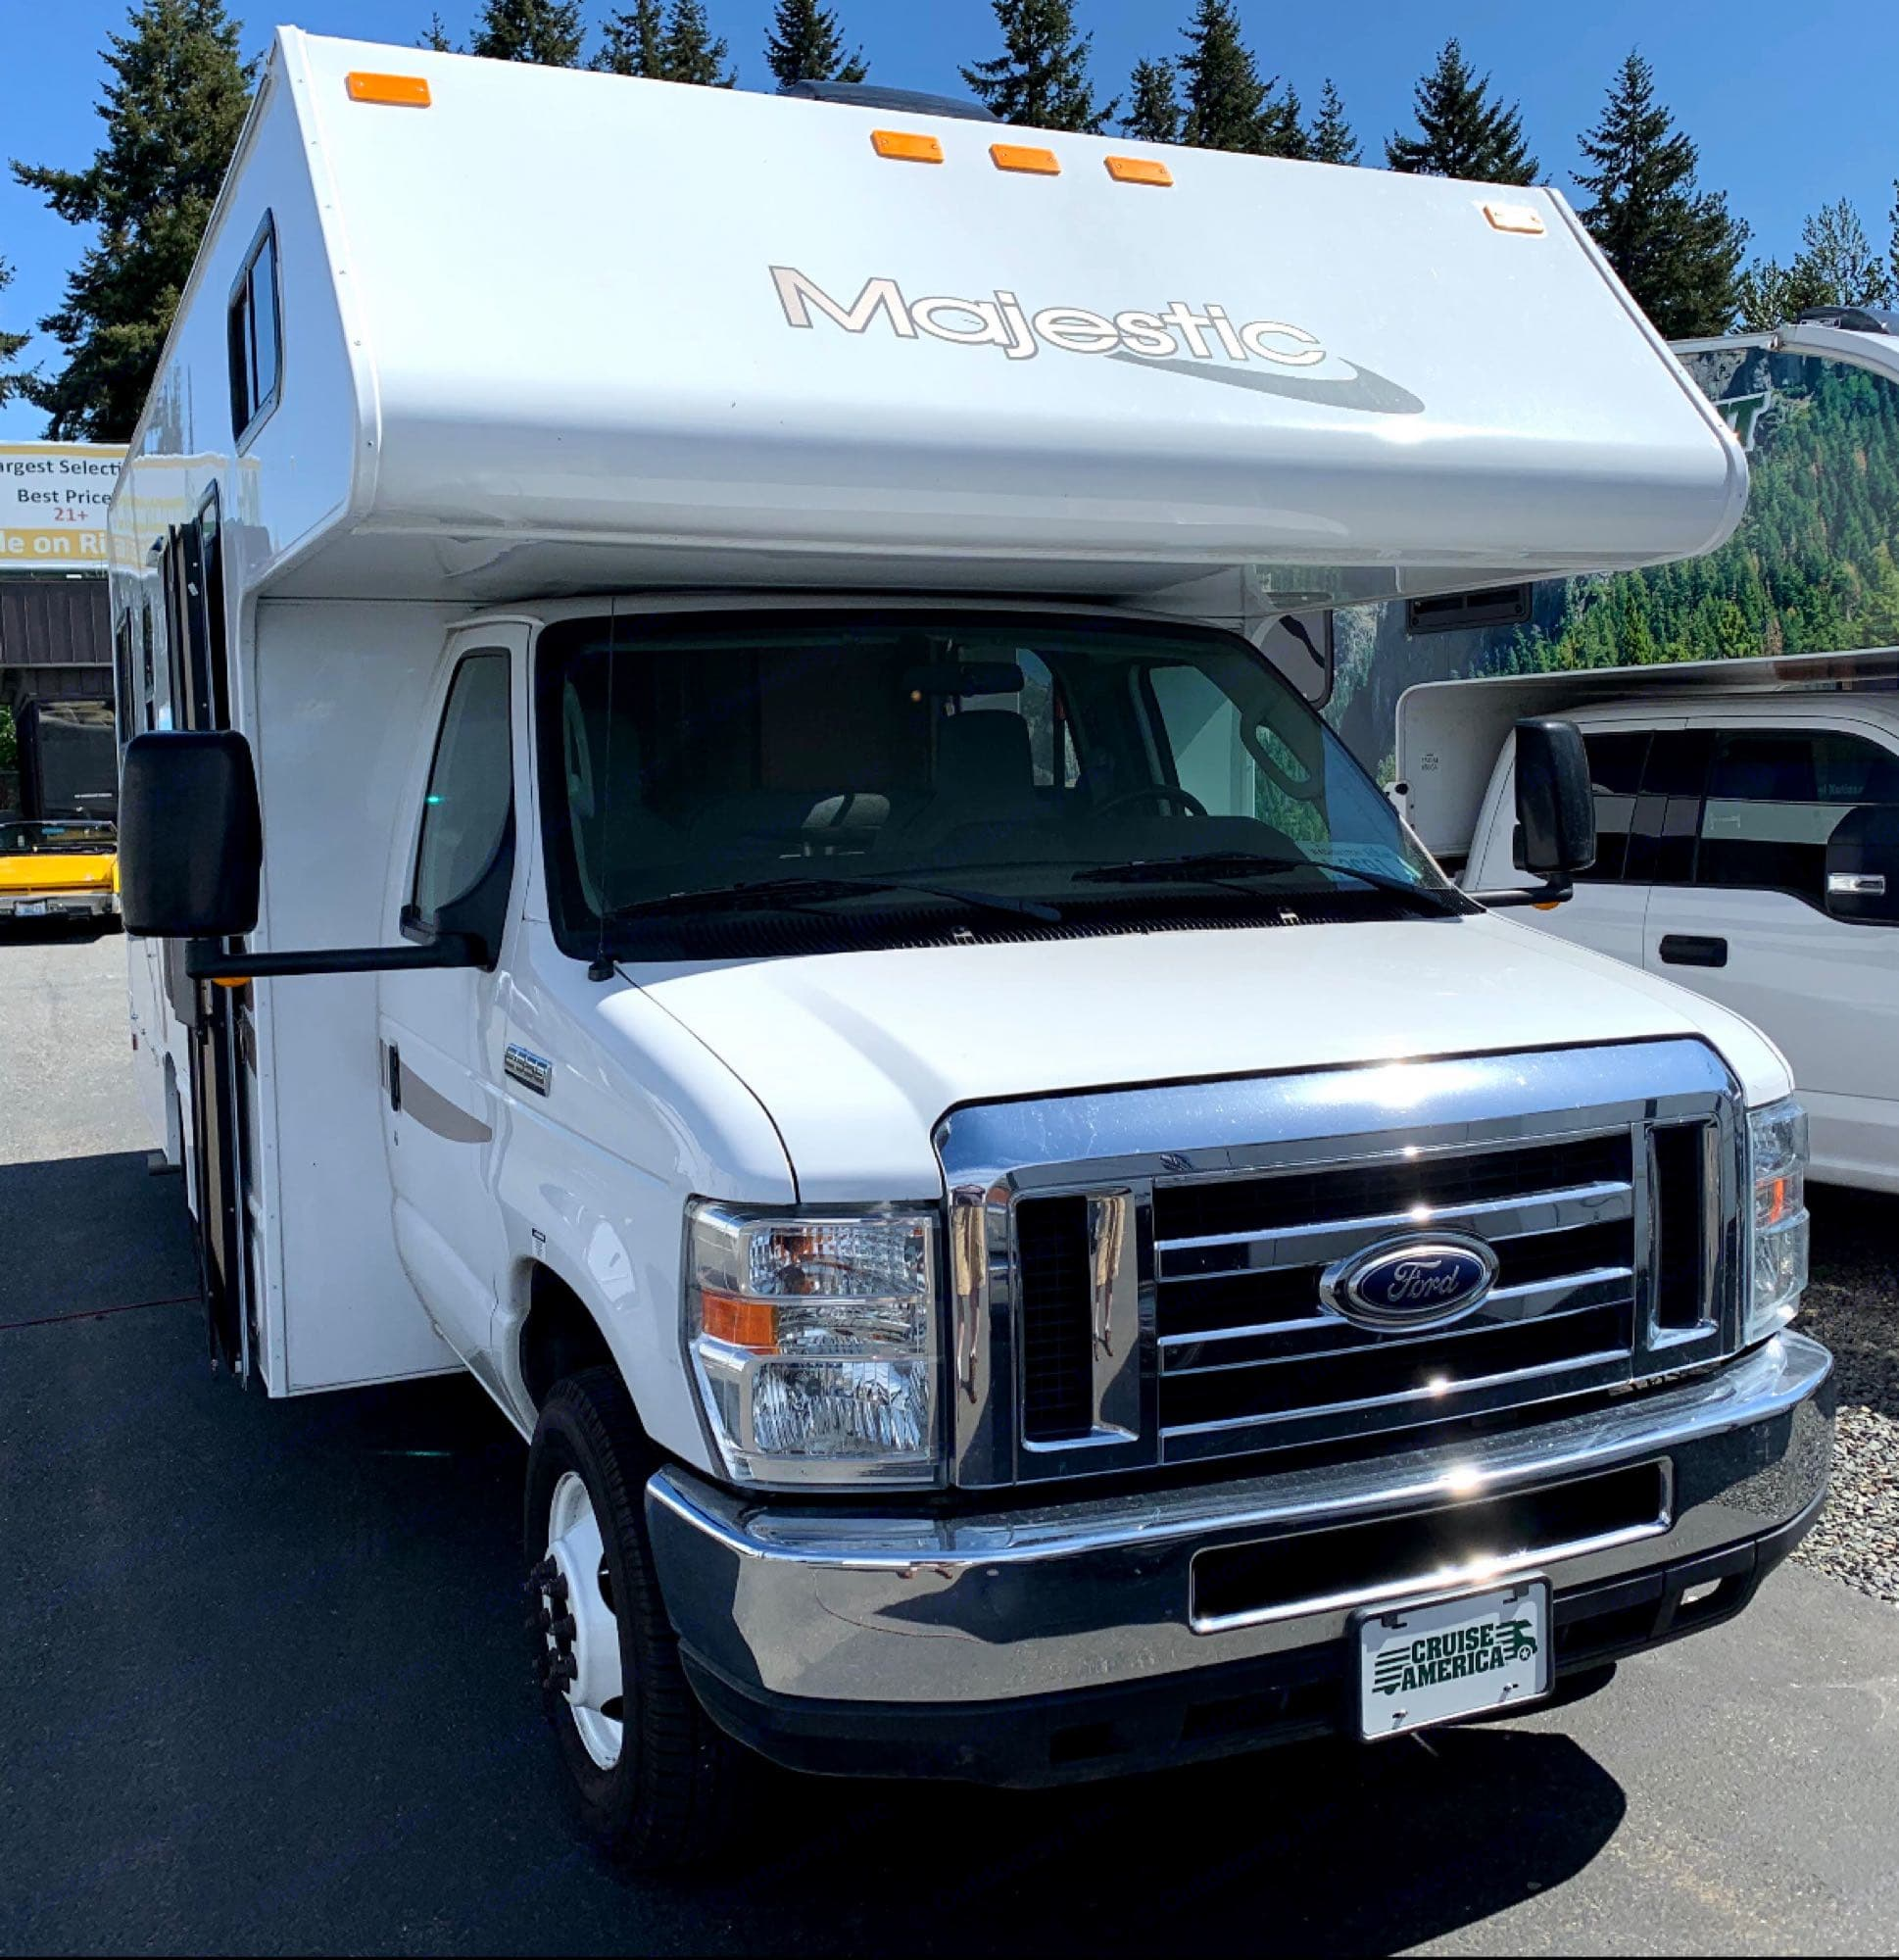 Front. Thor Motor Coach Majestic 2015